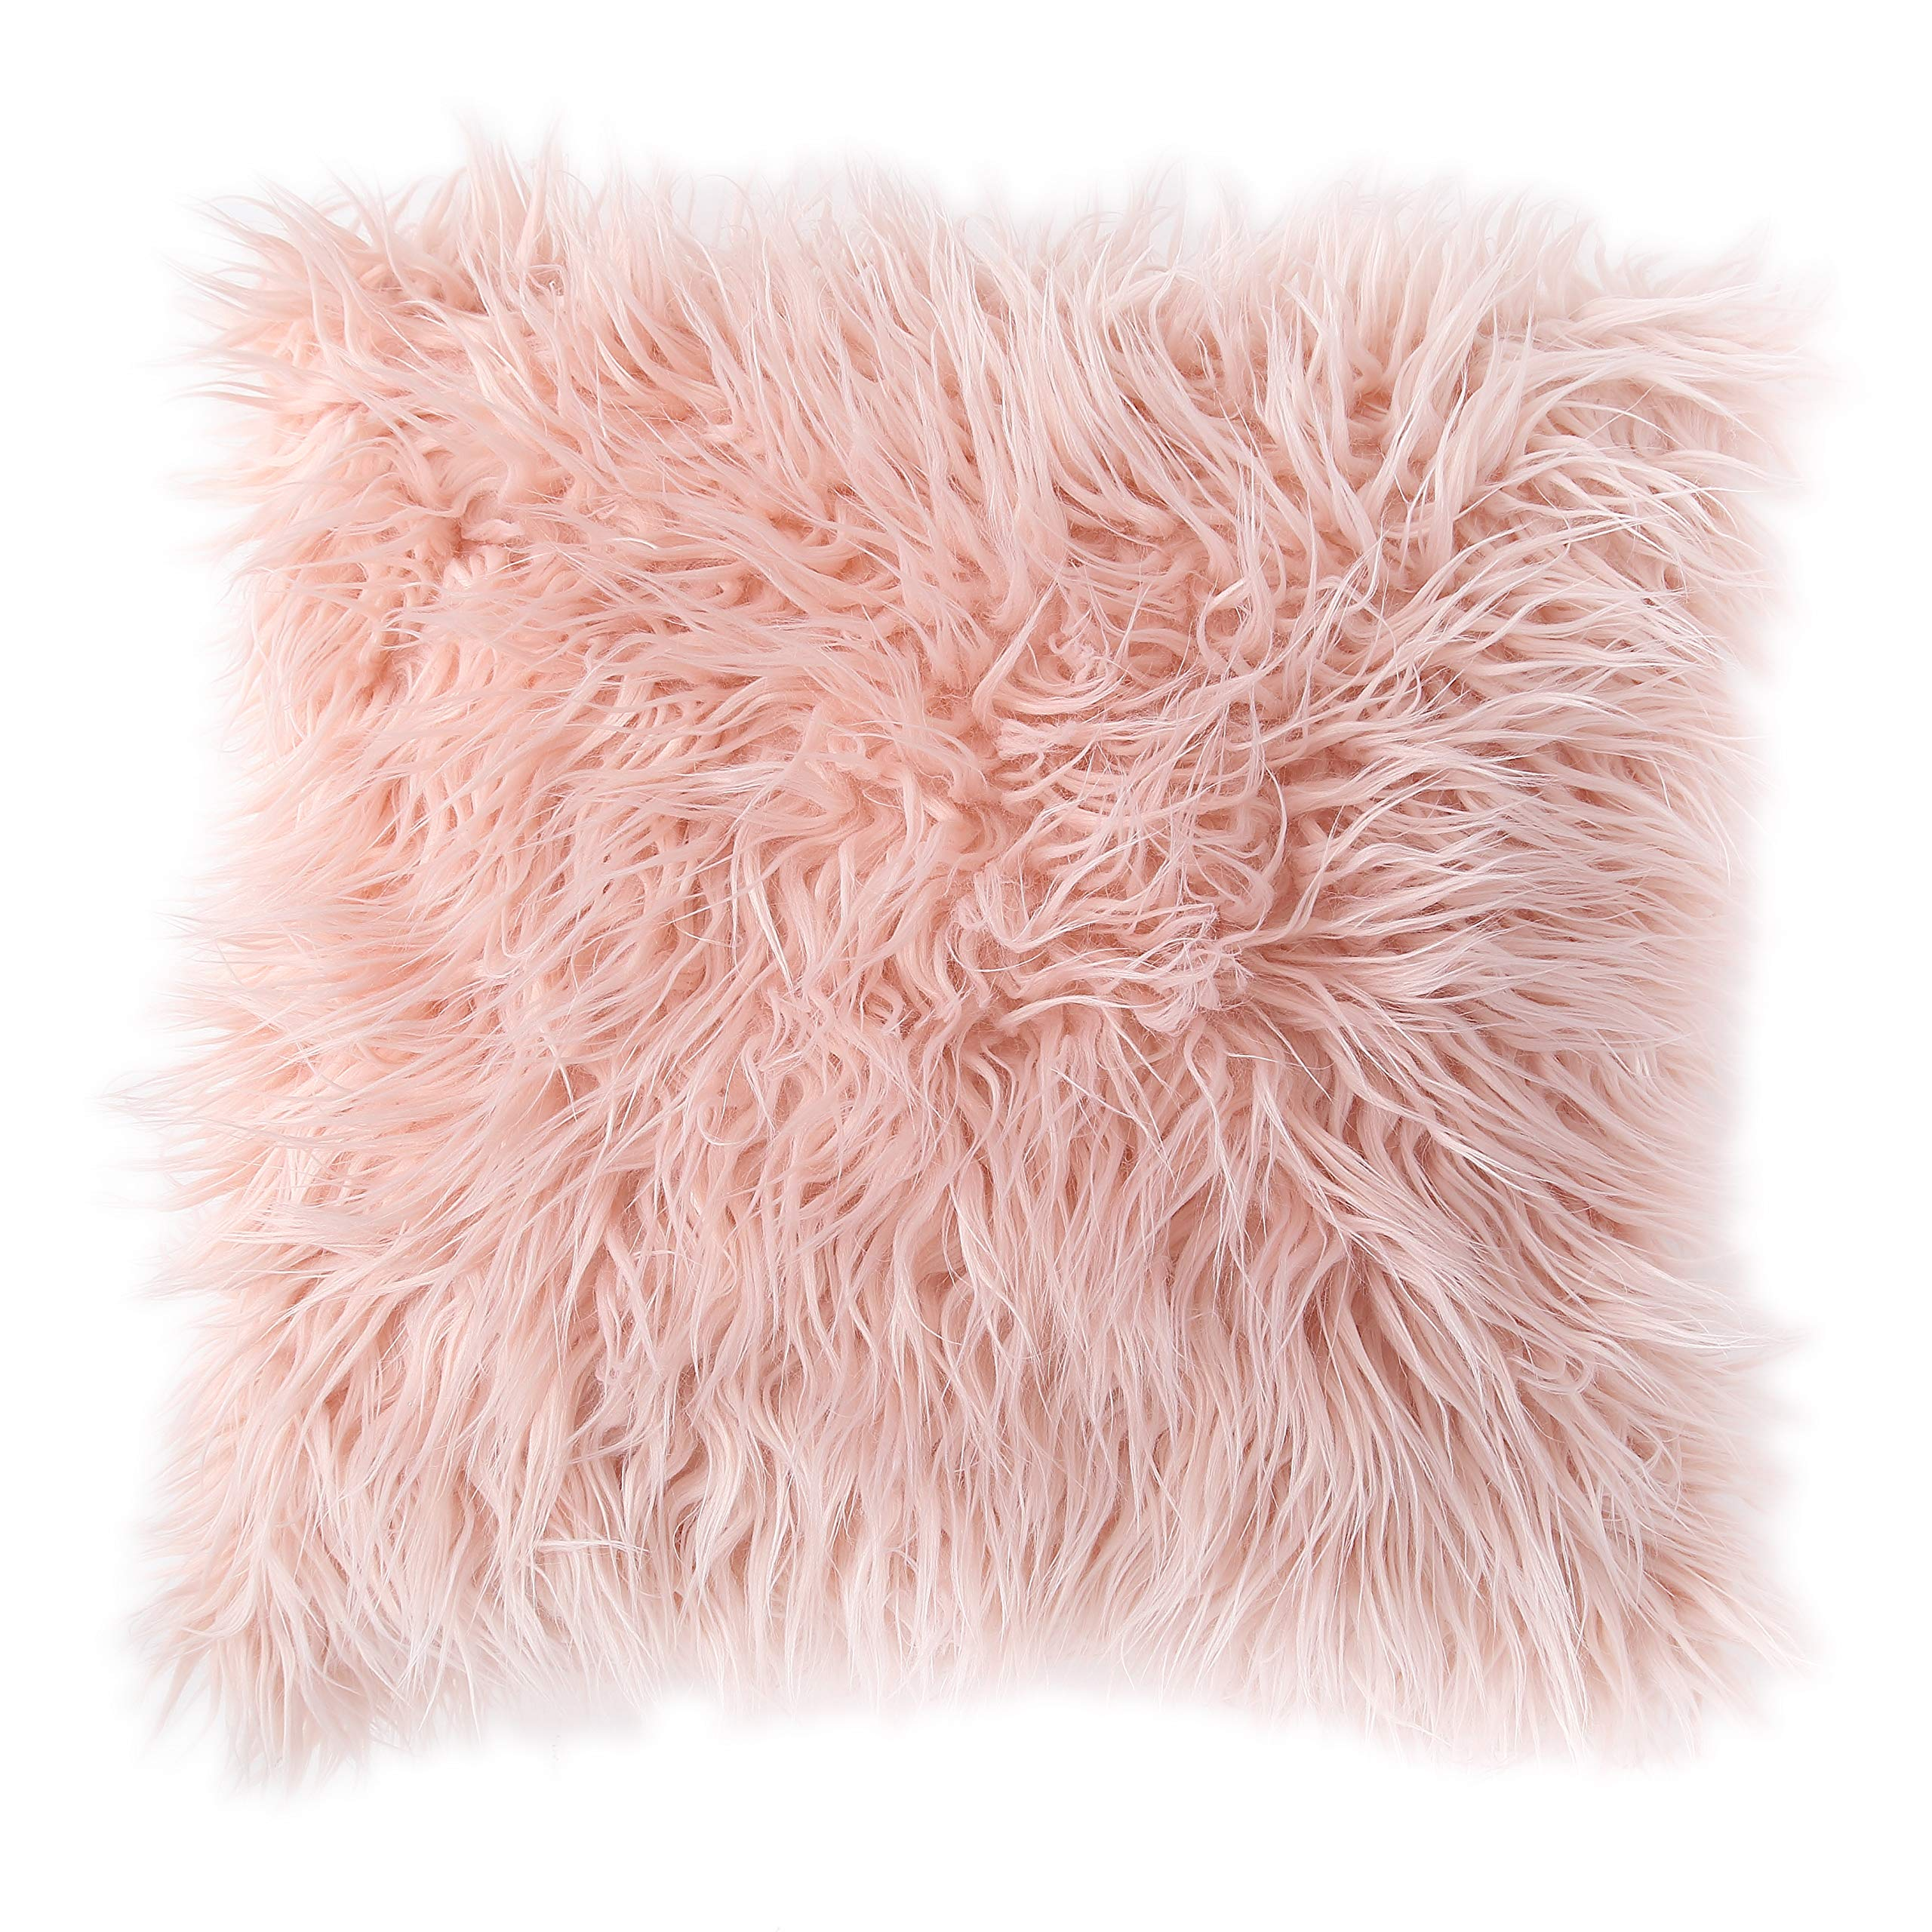 Morgan Home Decorative Faux Fur Throw Pillow Cushions Cover for Sofa Couch or Bed - 18 x 18 inches, 1 PC